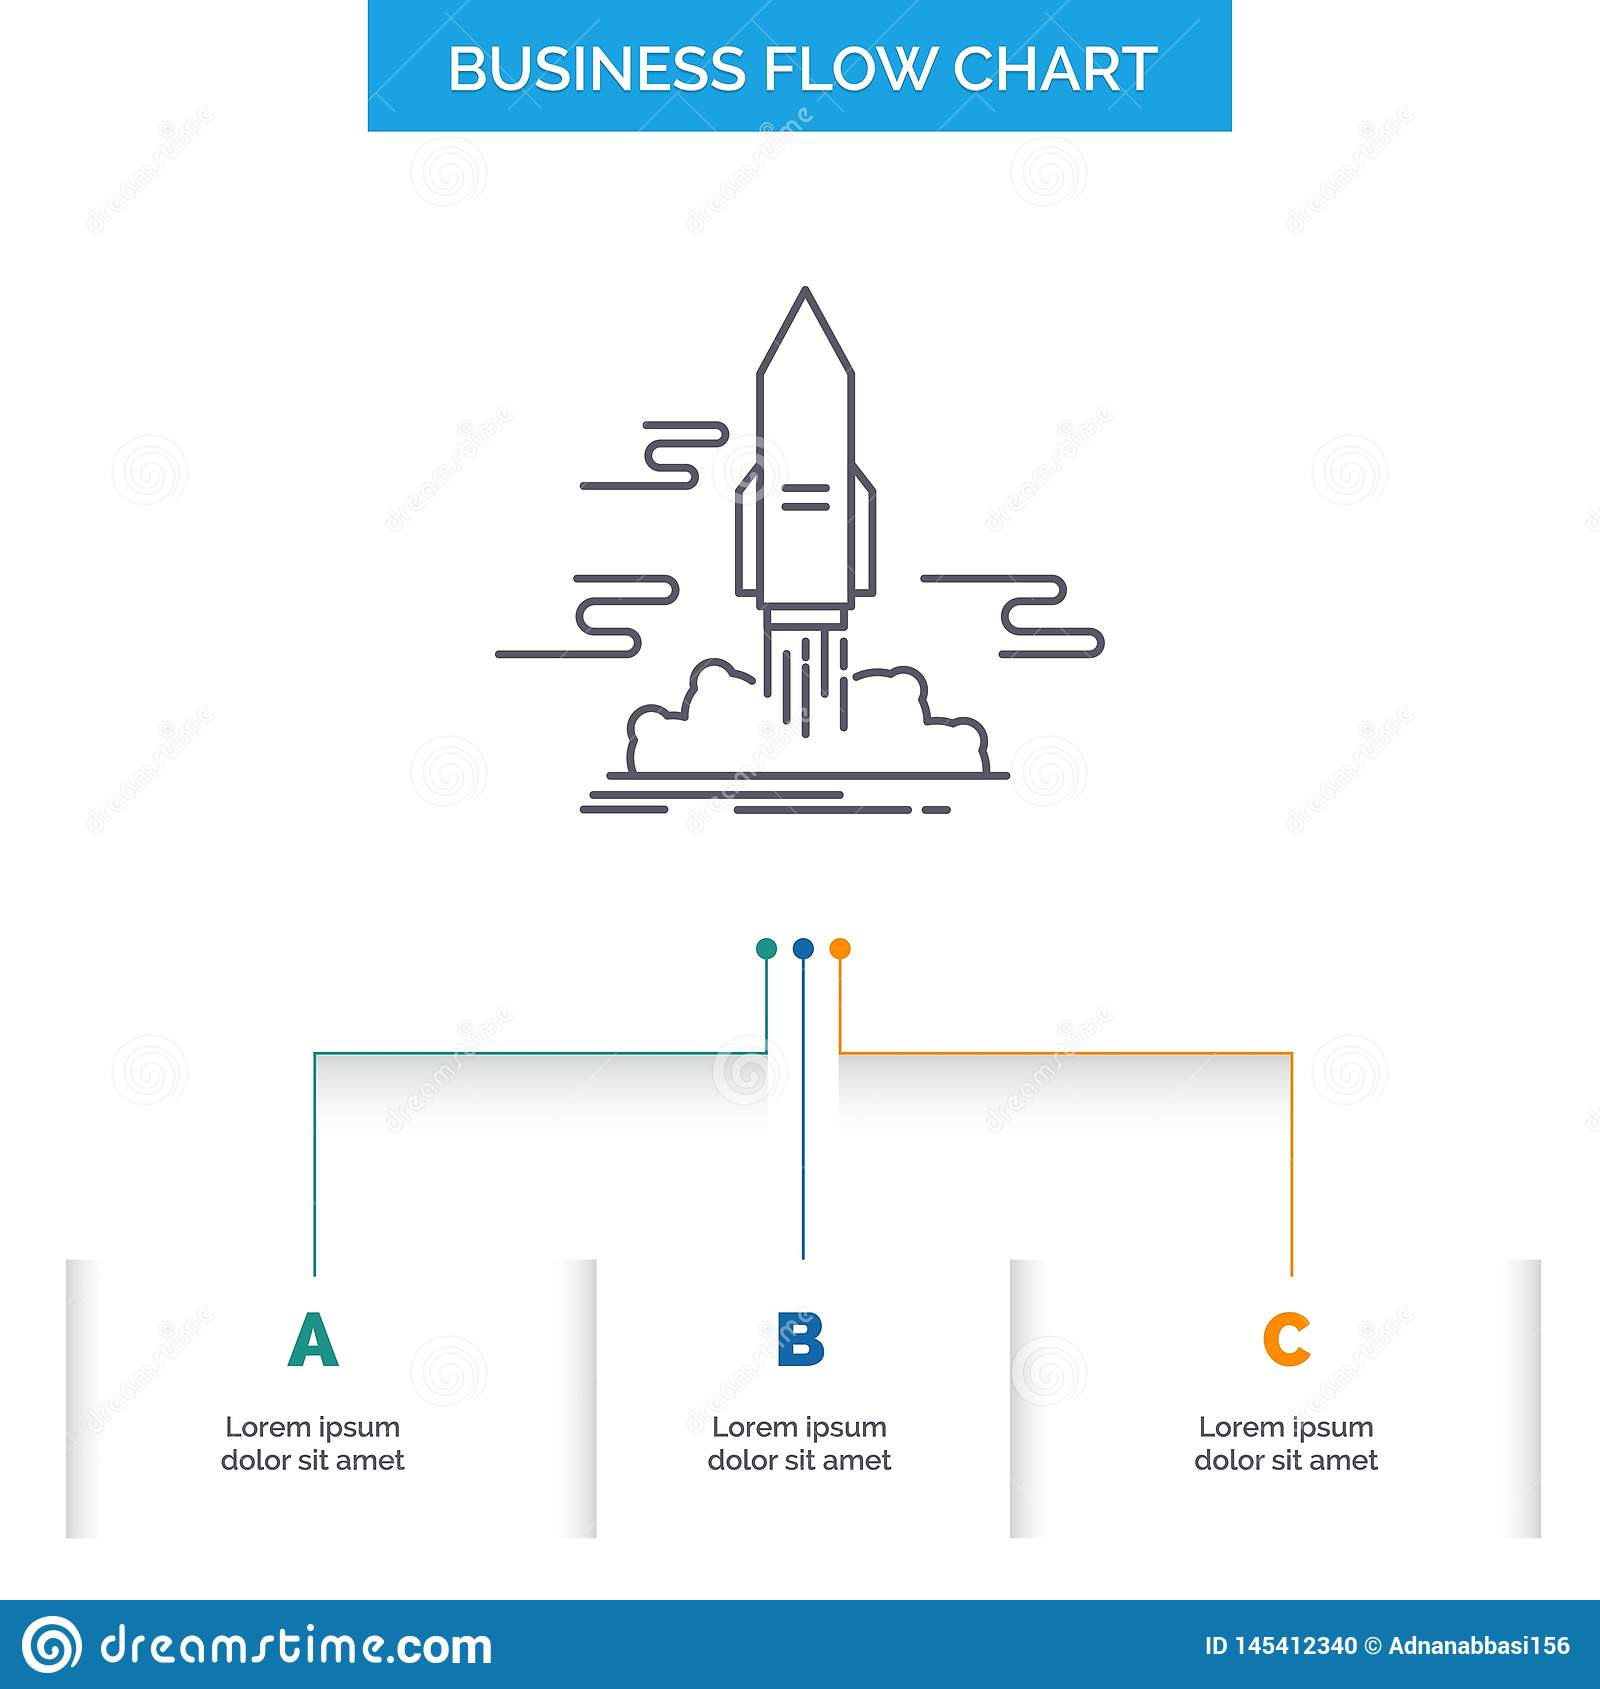 launch, Publish, App, shuttle, space Business Flow Chart Design with 3 Steps. Line Icon For Presentation Background Template Place